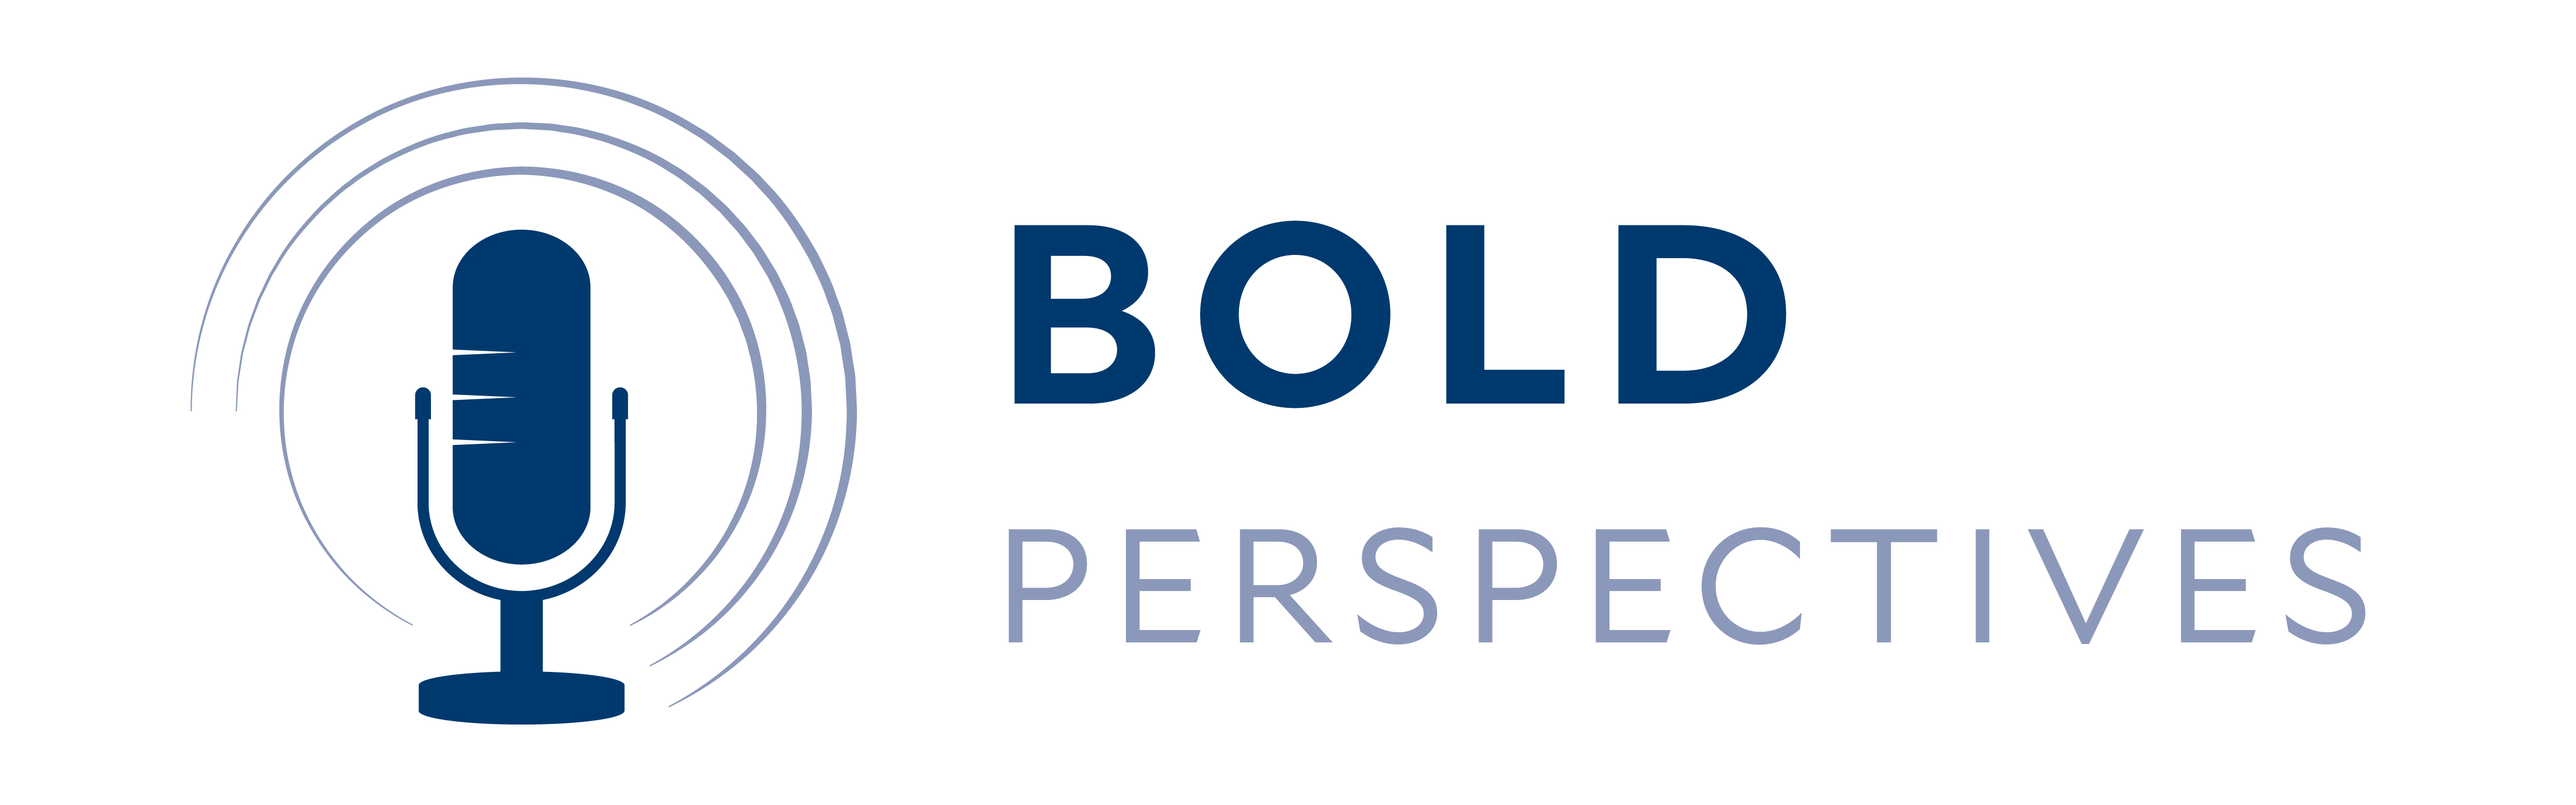 BOLD Perspectives logo